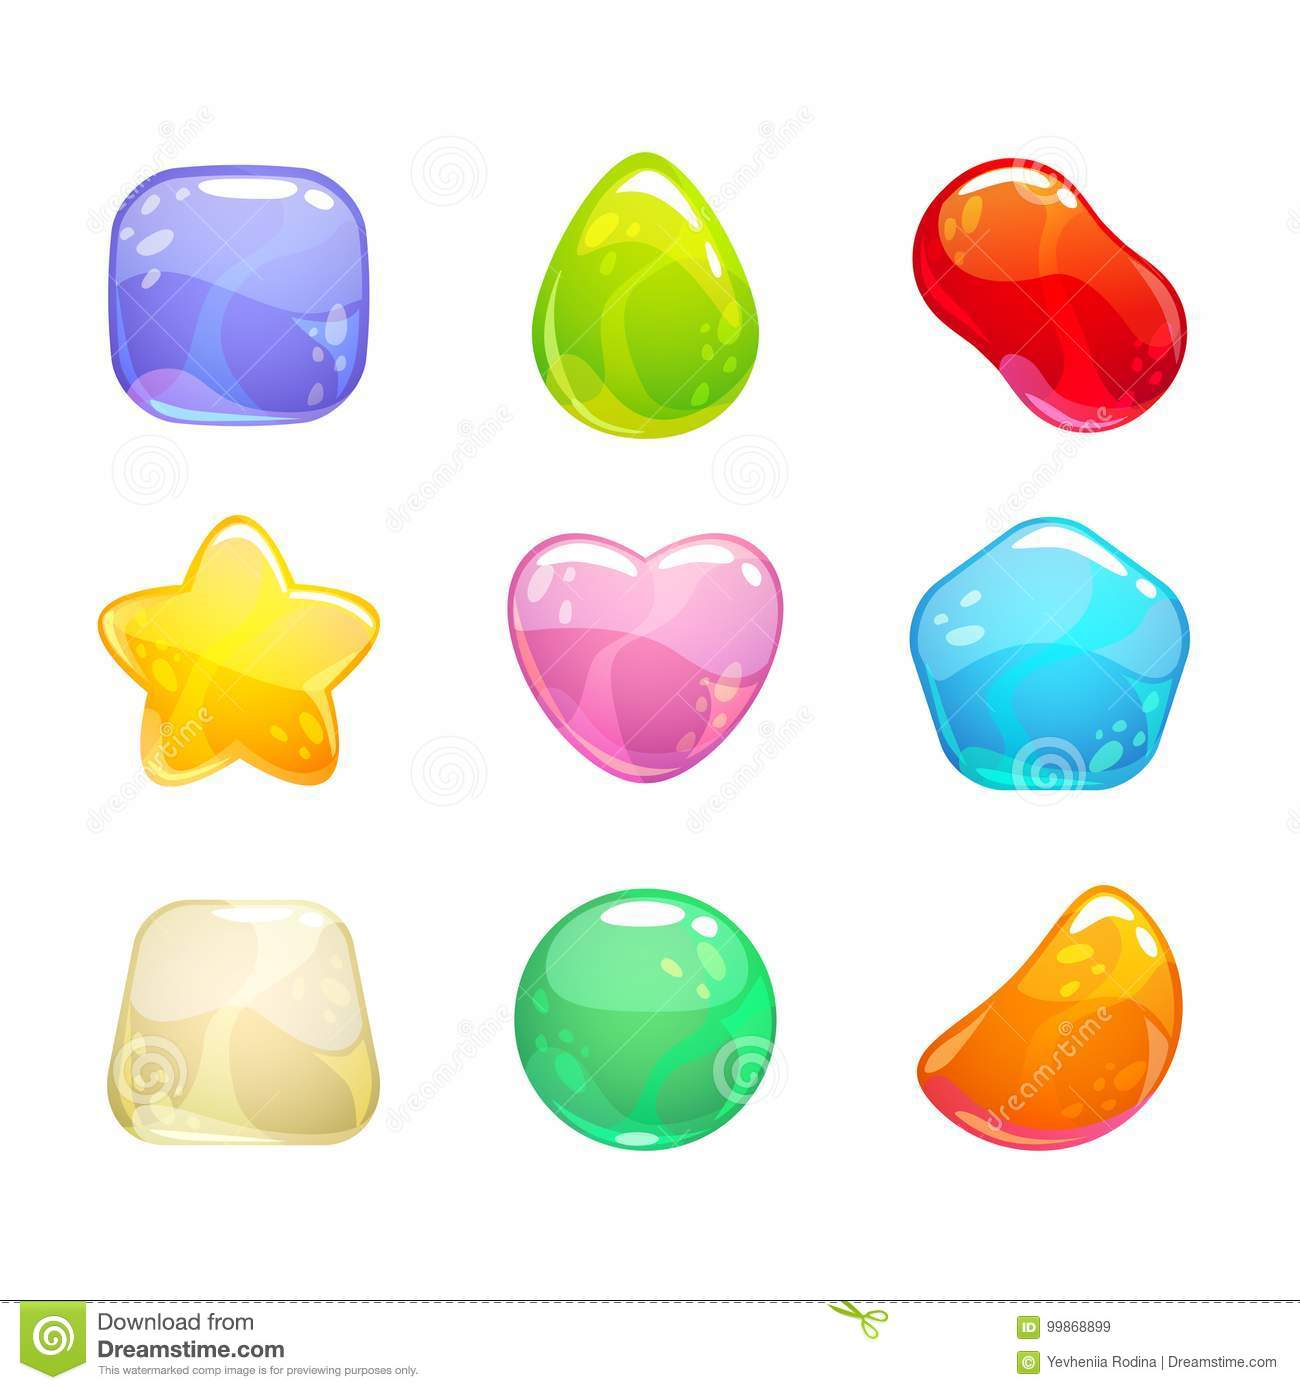 Funny cartoon colorful jelly candies set.